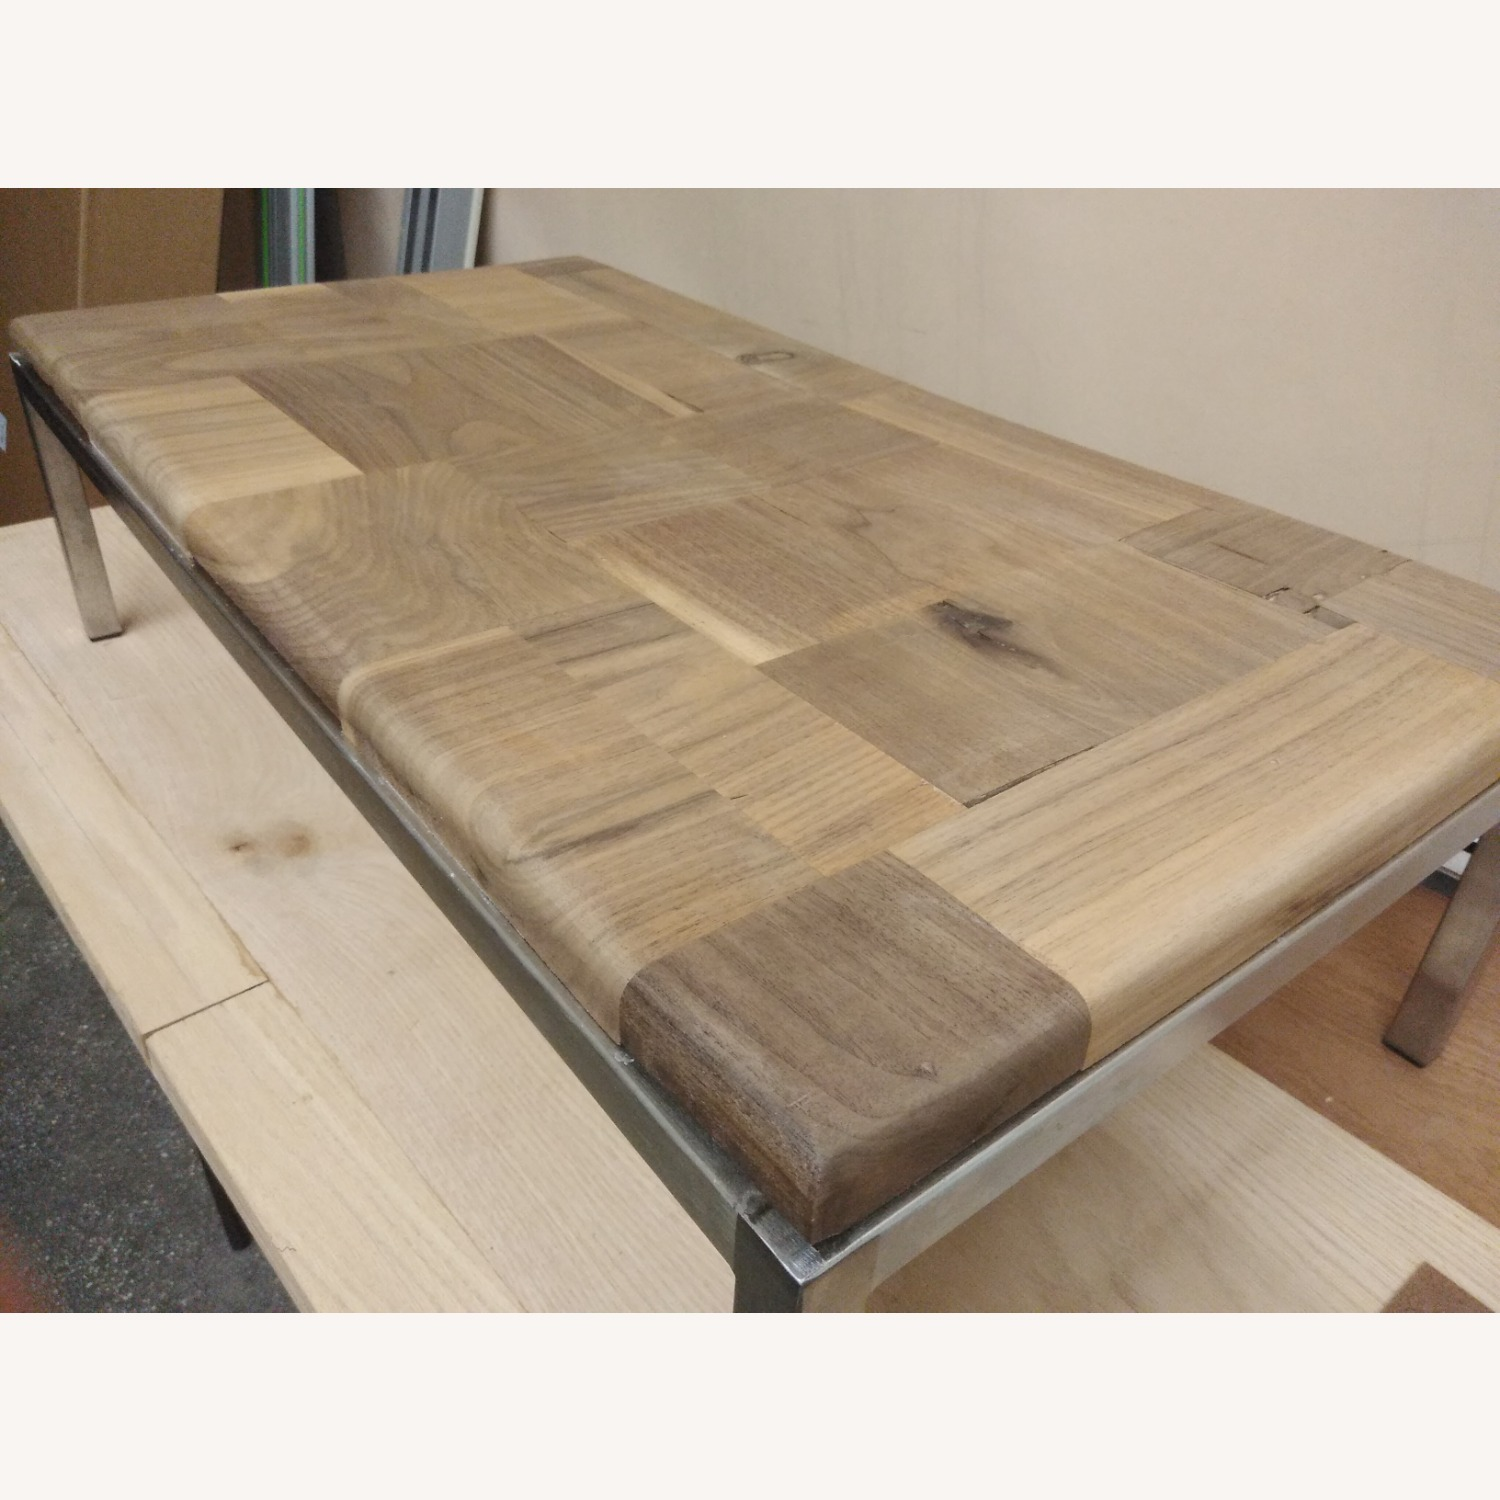 Restoration Hardware Solid Walnut Mosaic Coffee Table - image-11